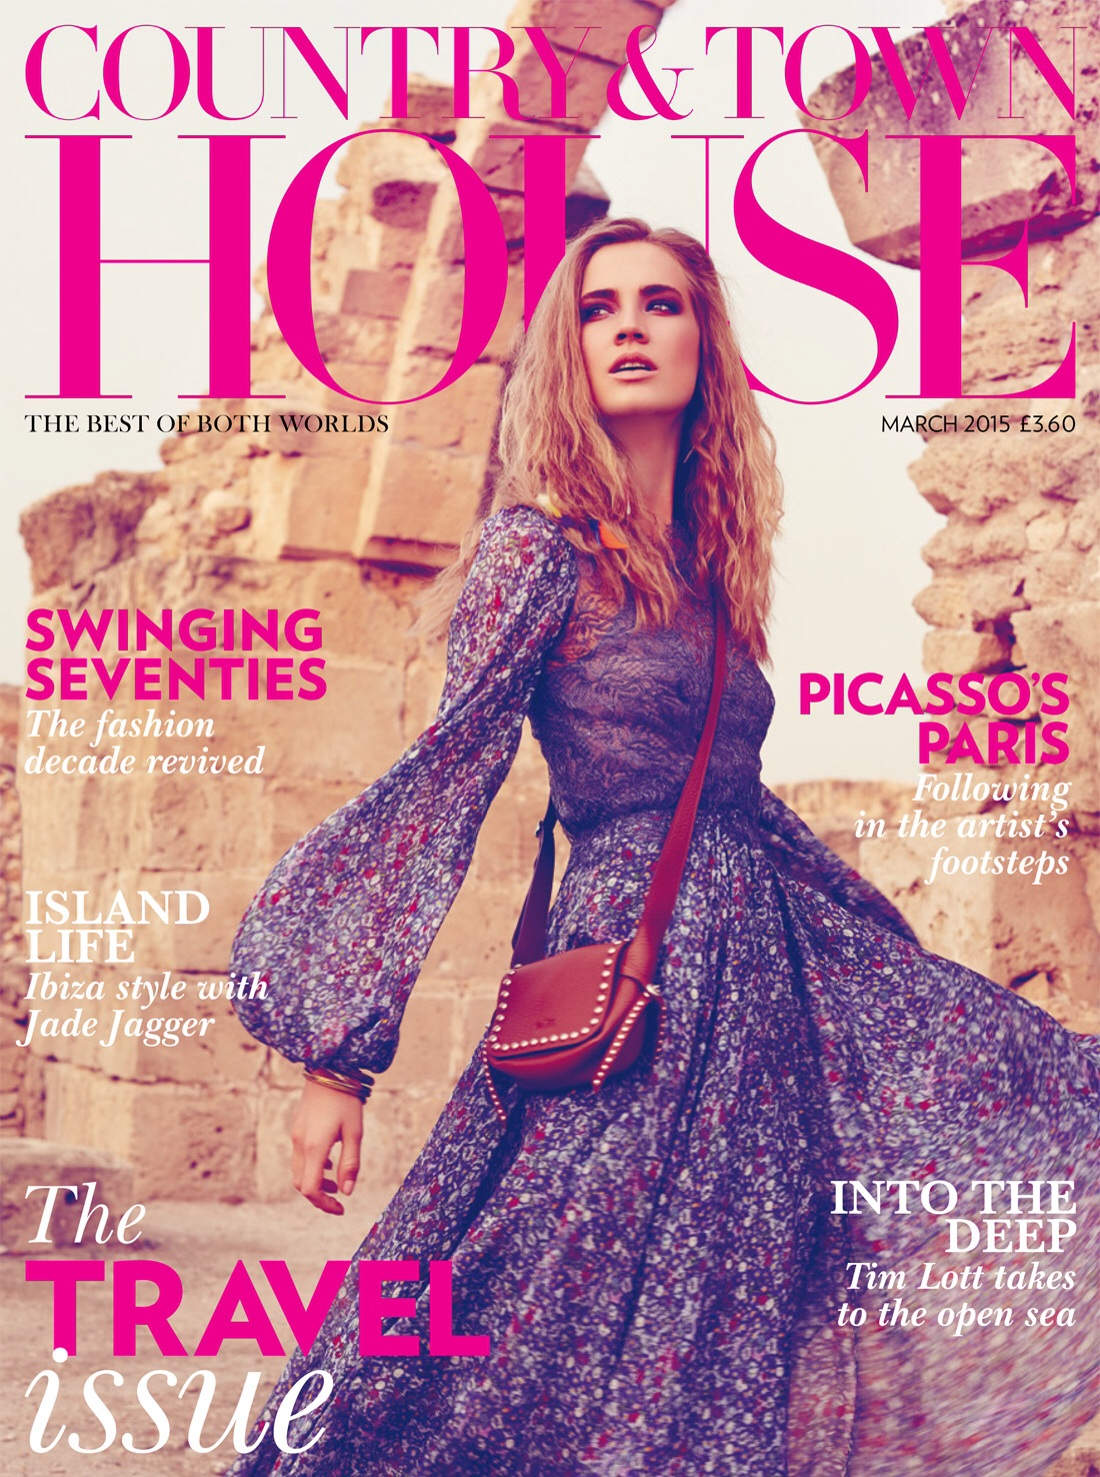 Front cover of the March 2015 issue of Country & Townhouse Magazine